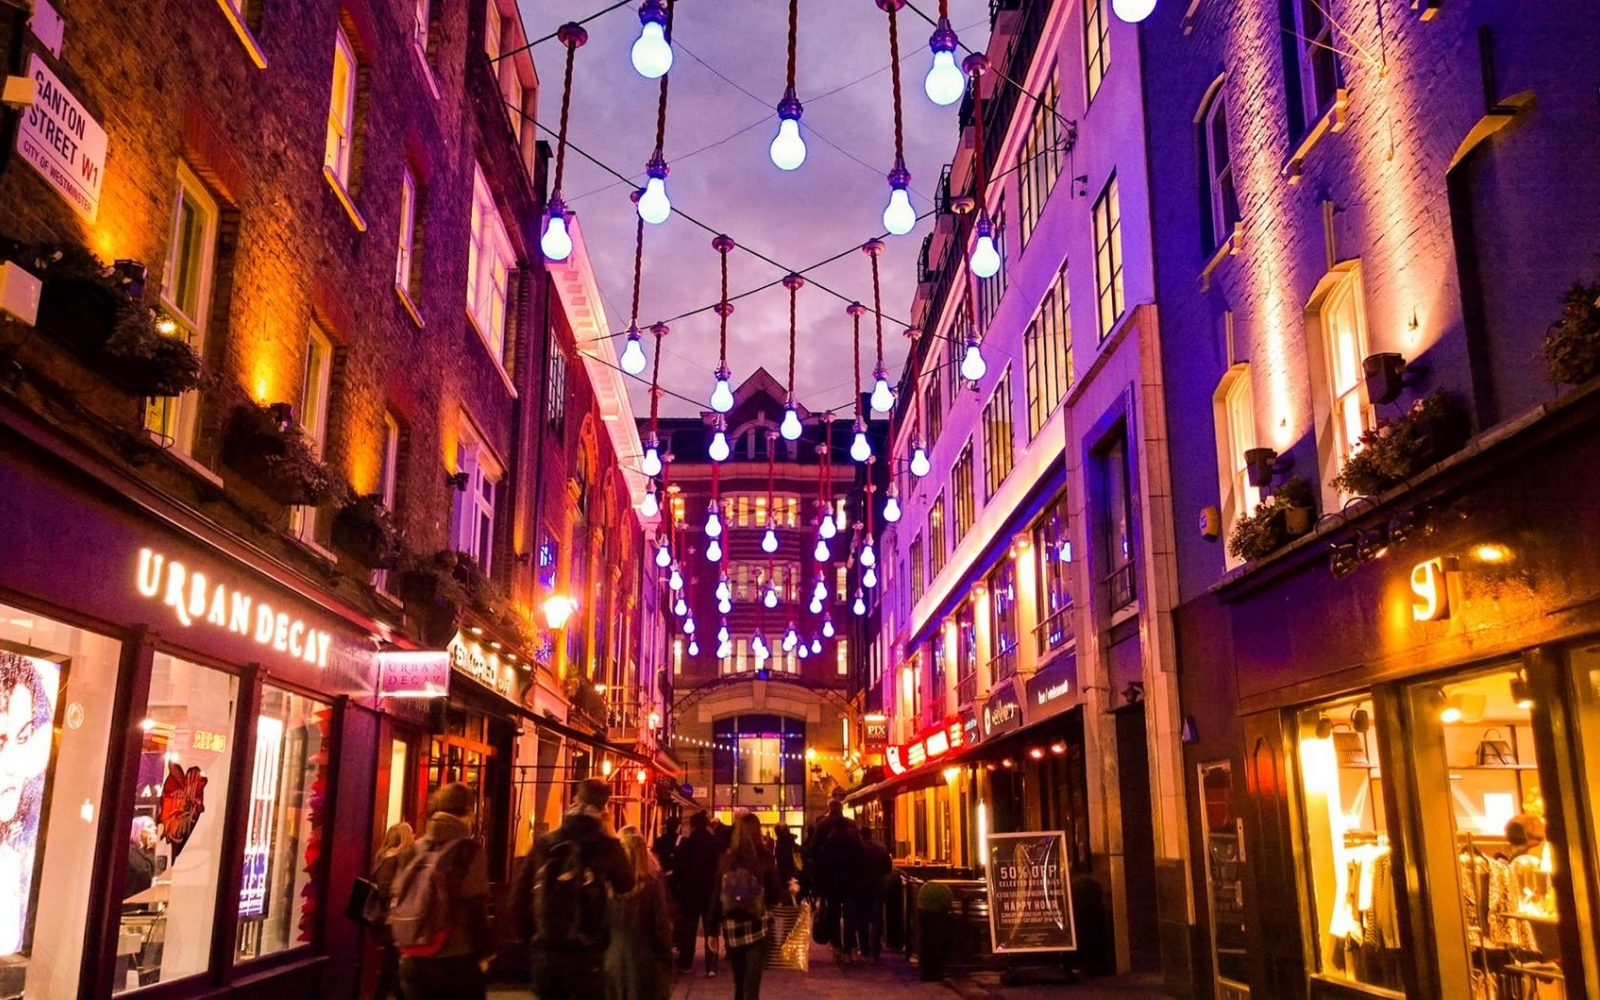 The competition is looking for 21.9MW of demand turn-down on Carnaby Street in London.